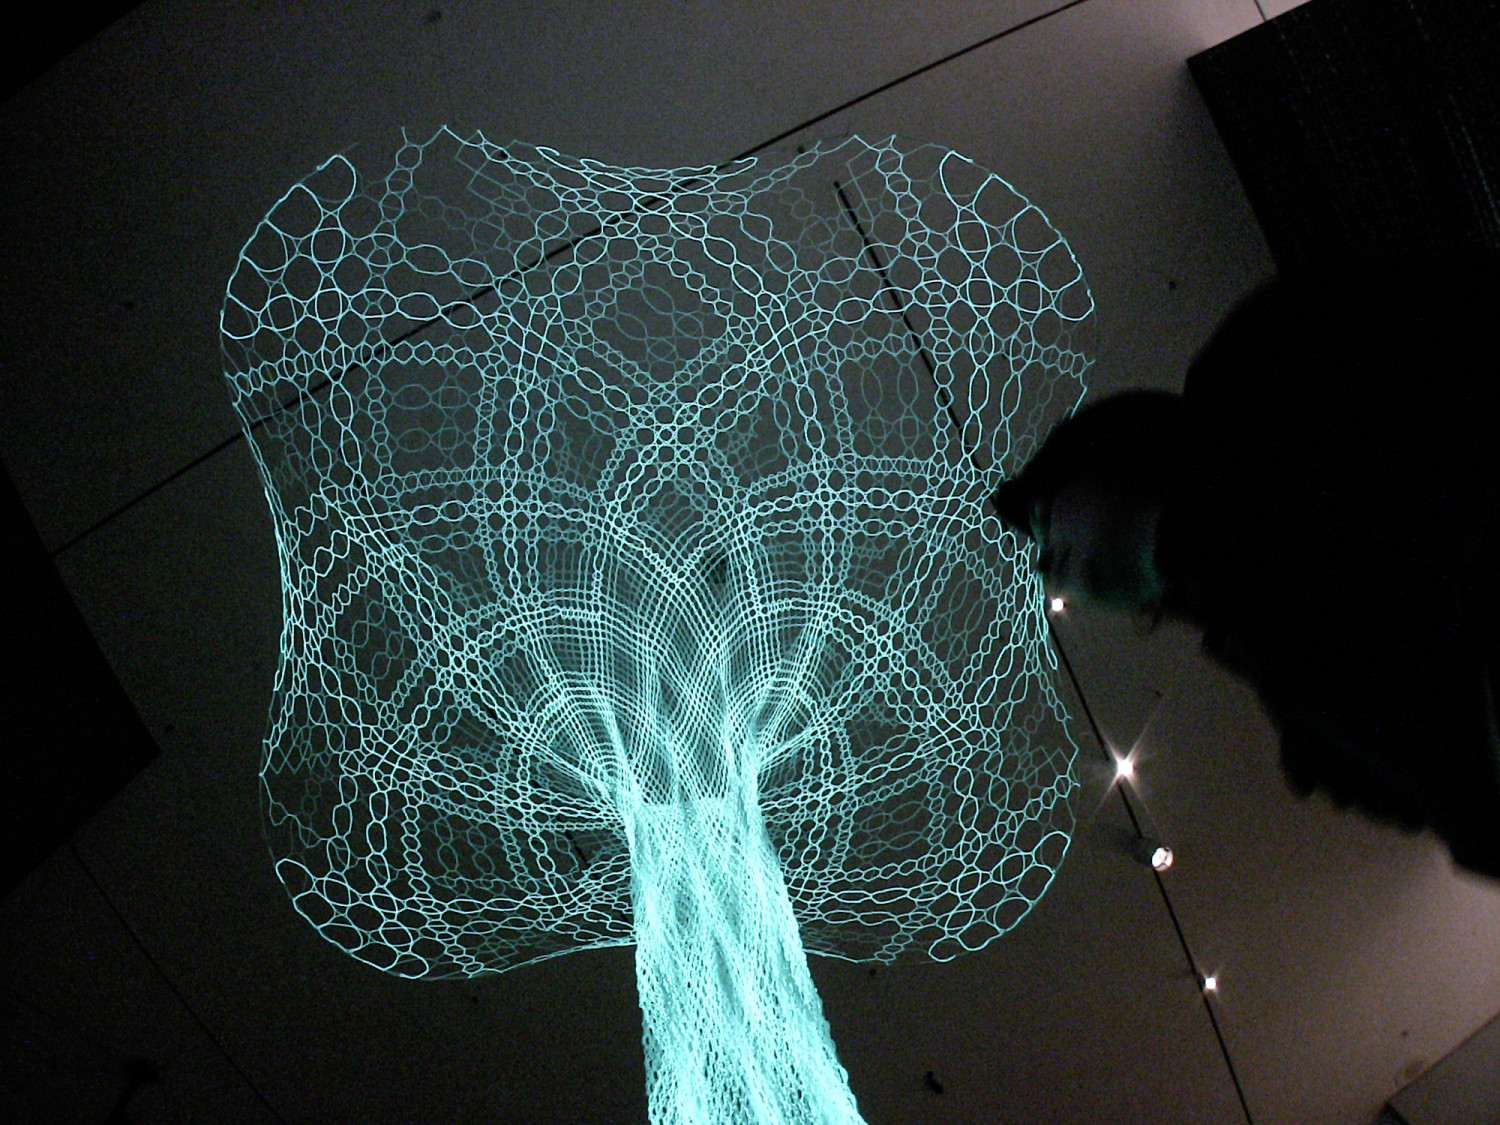 Commissioned to present our recent experiments in responsive textile architecture at the MoMA, New York. Sonumbra is the worlds first fully animated lace-architectural work.